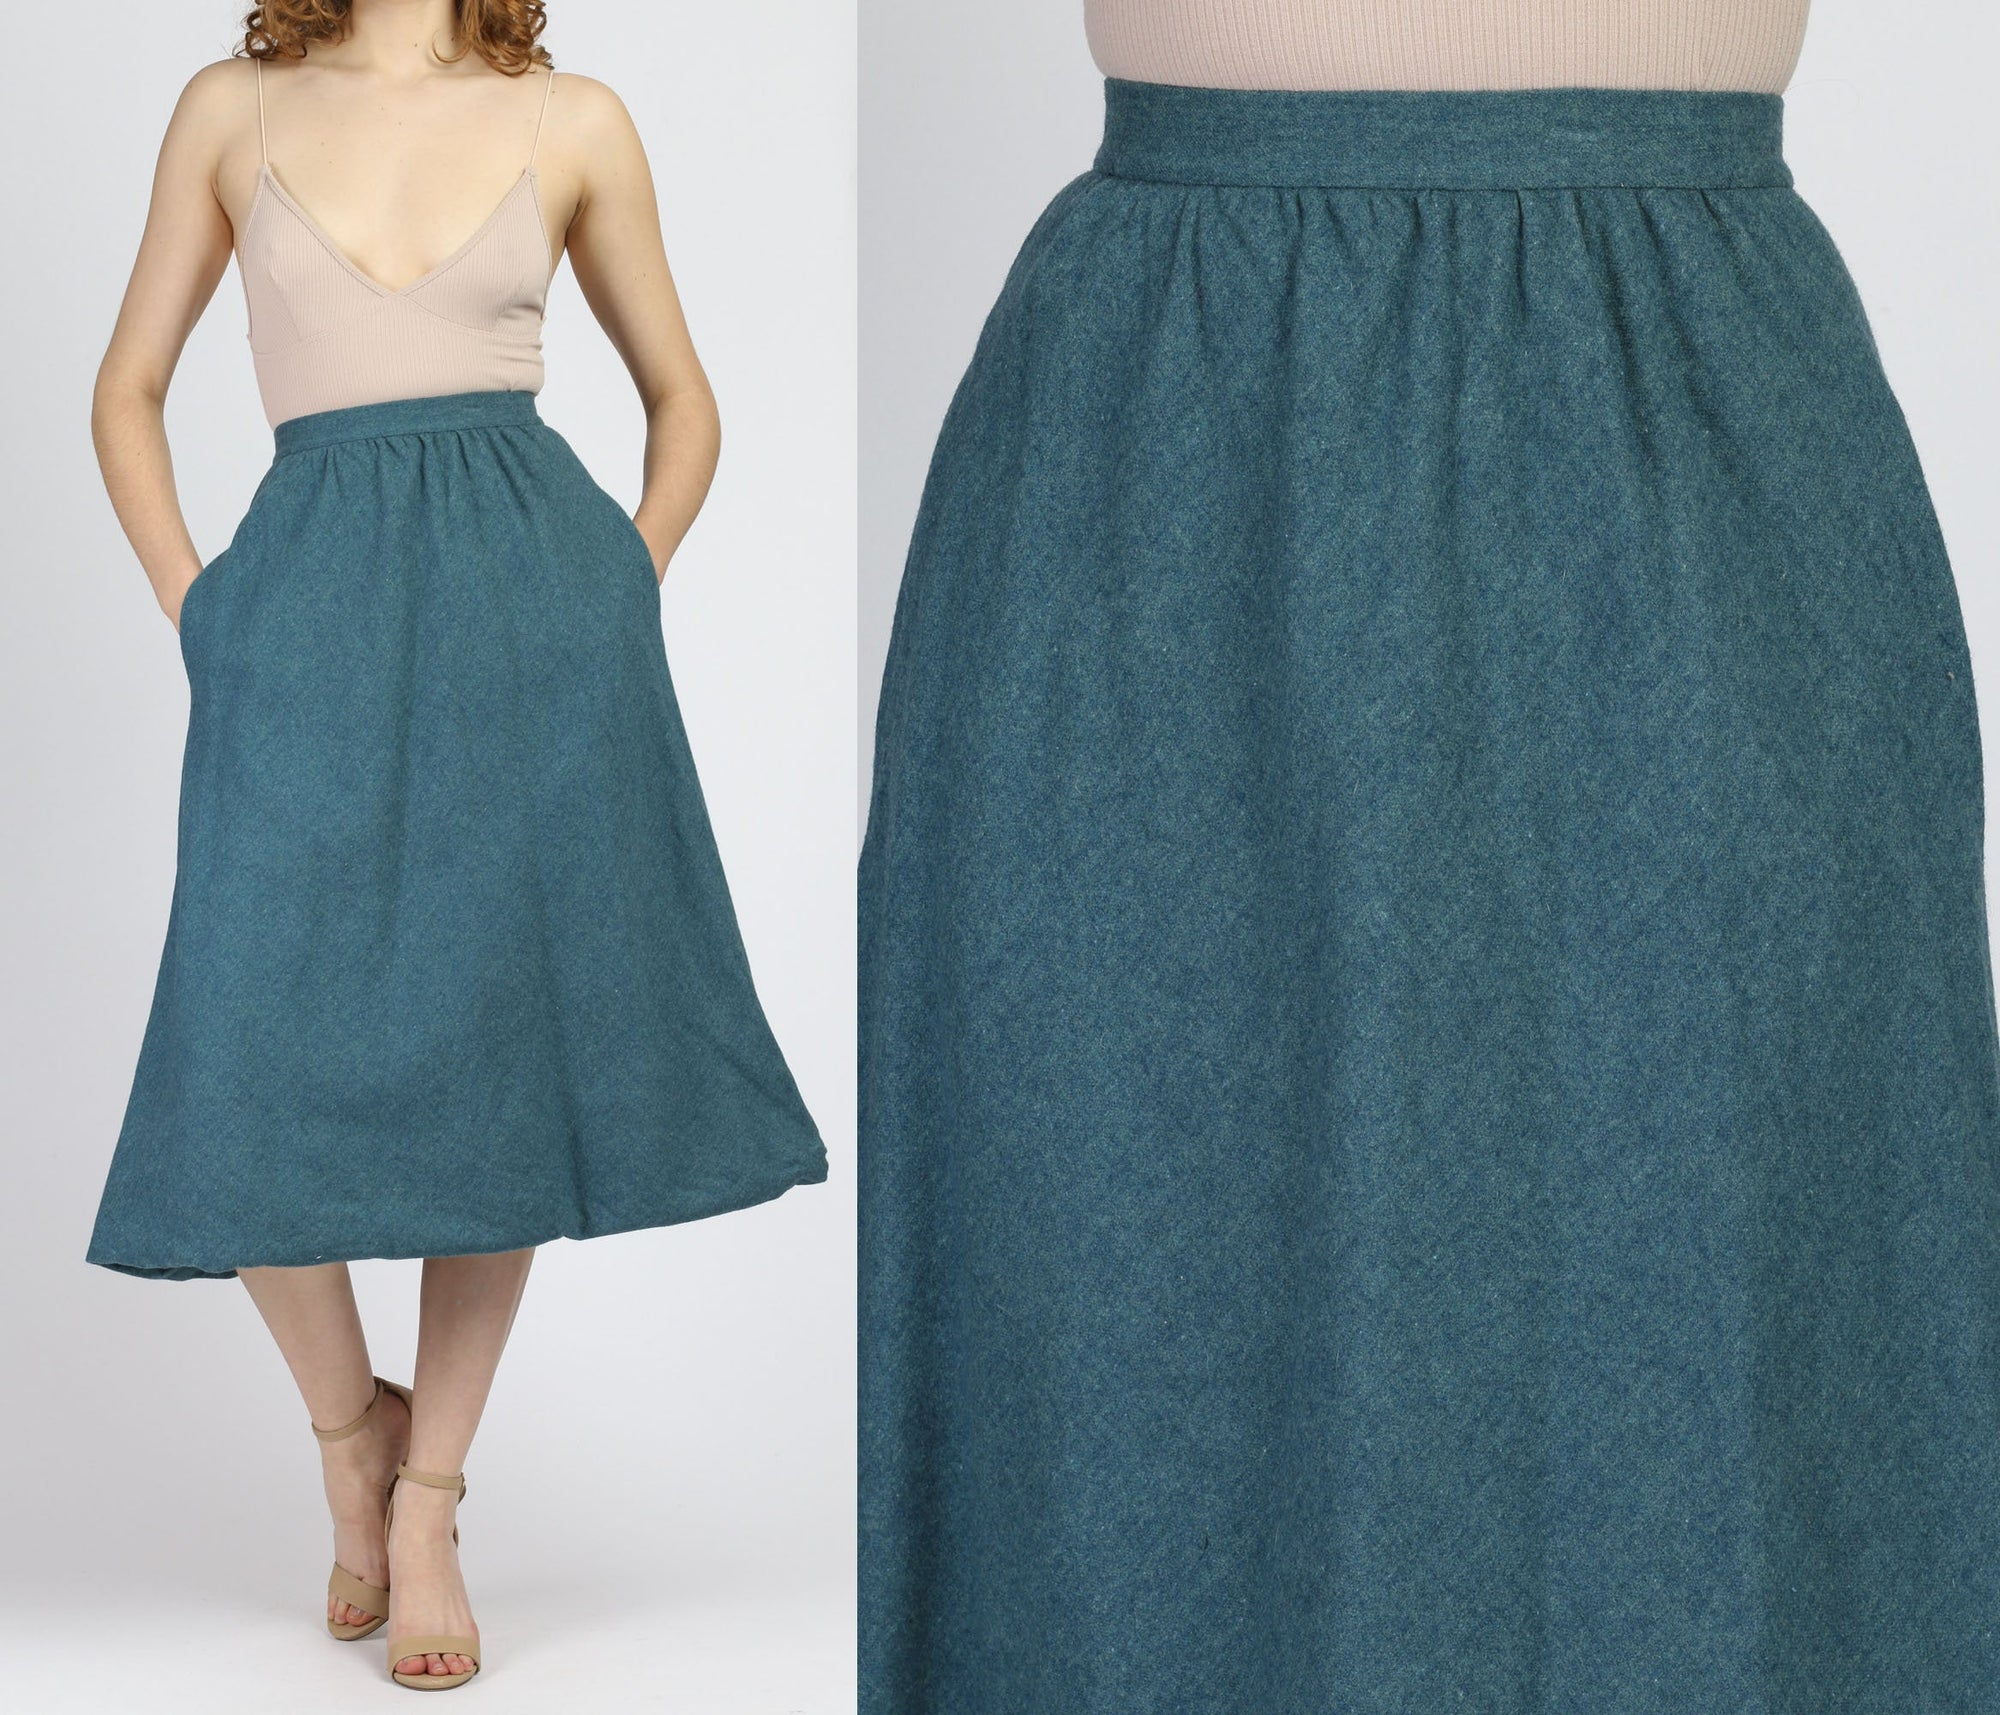 70s Teal Pendleton Midi Skirt - Extra Small, 25""